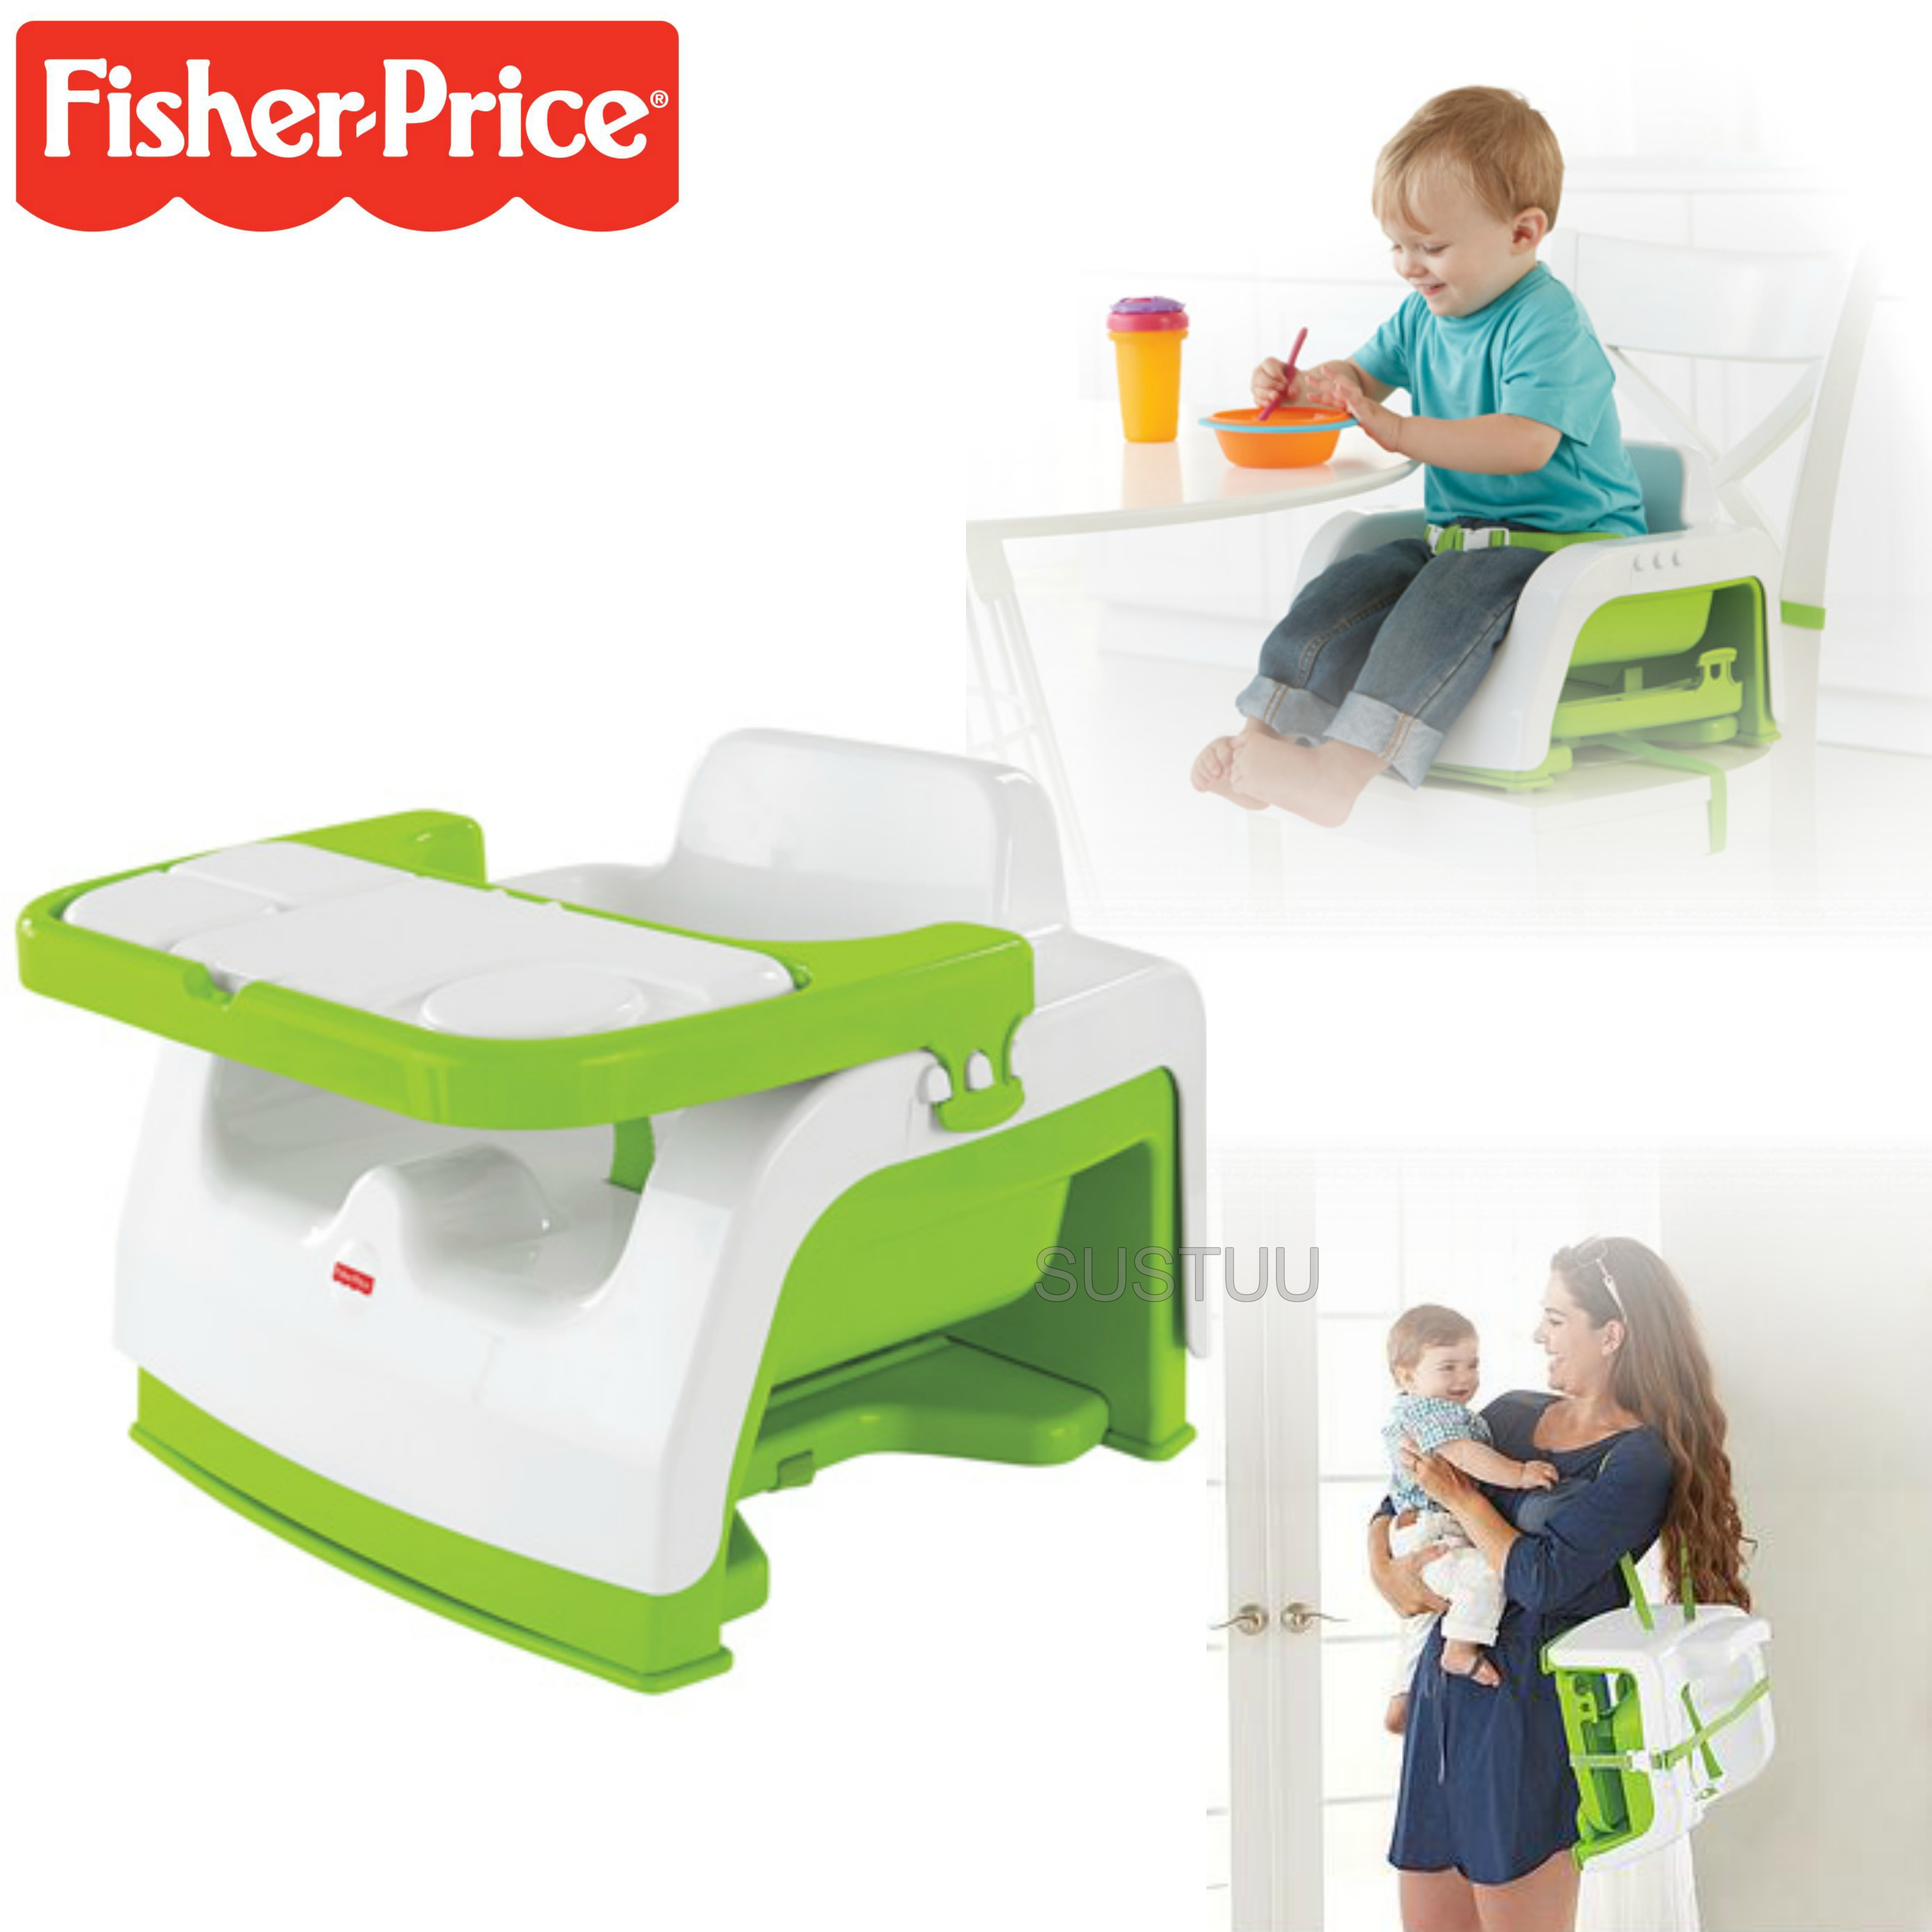 Fisher-Price Grow With Me Portable Booster Baby Seat | Mealtime at Home & Travel | New